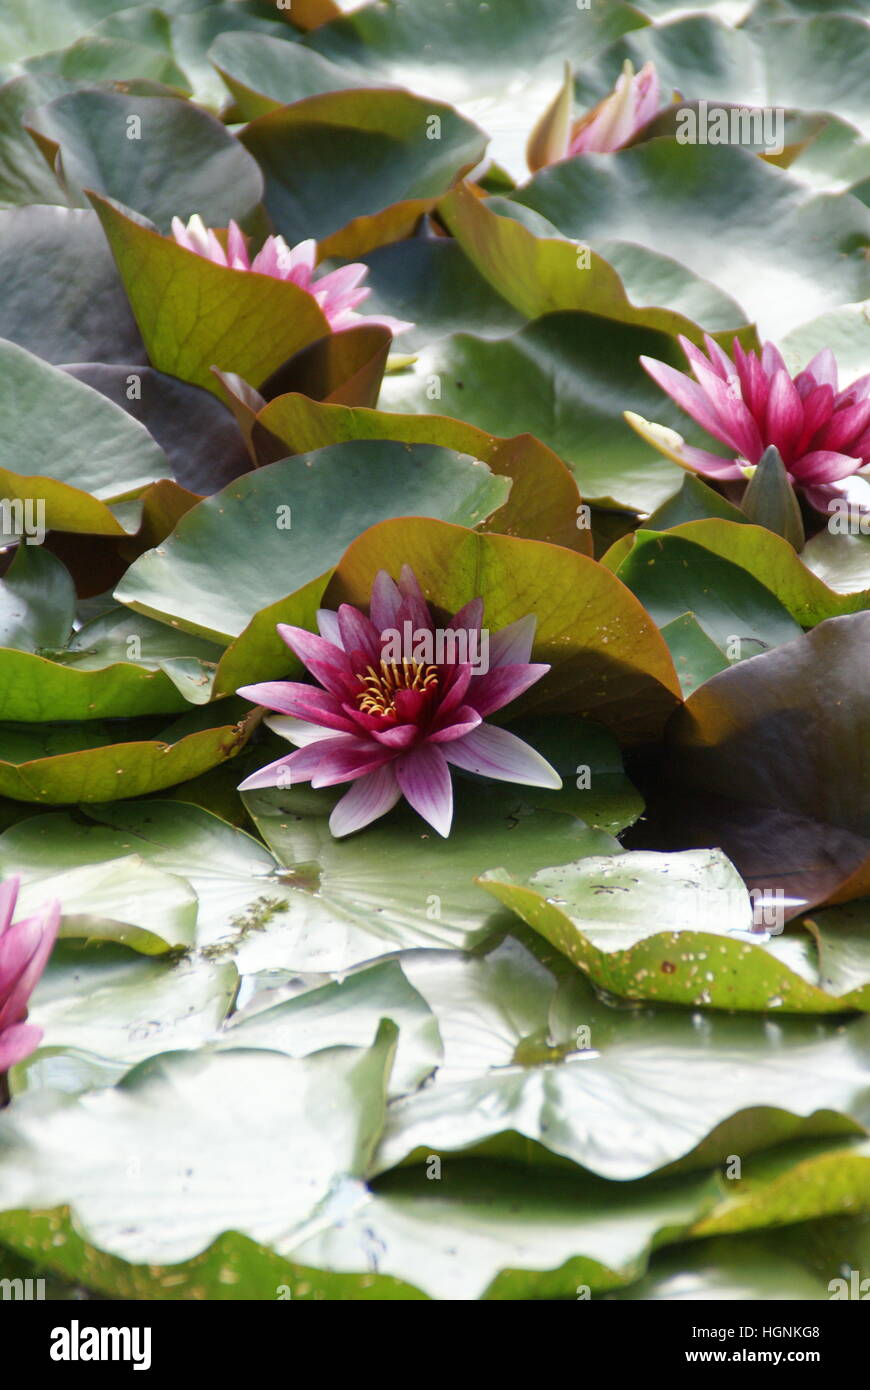 A water lily in a pond. - Stock Image